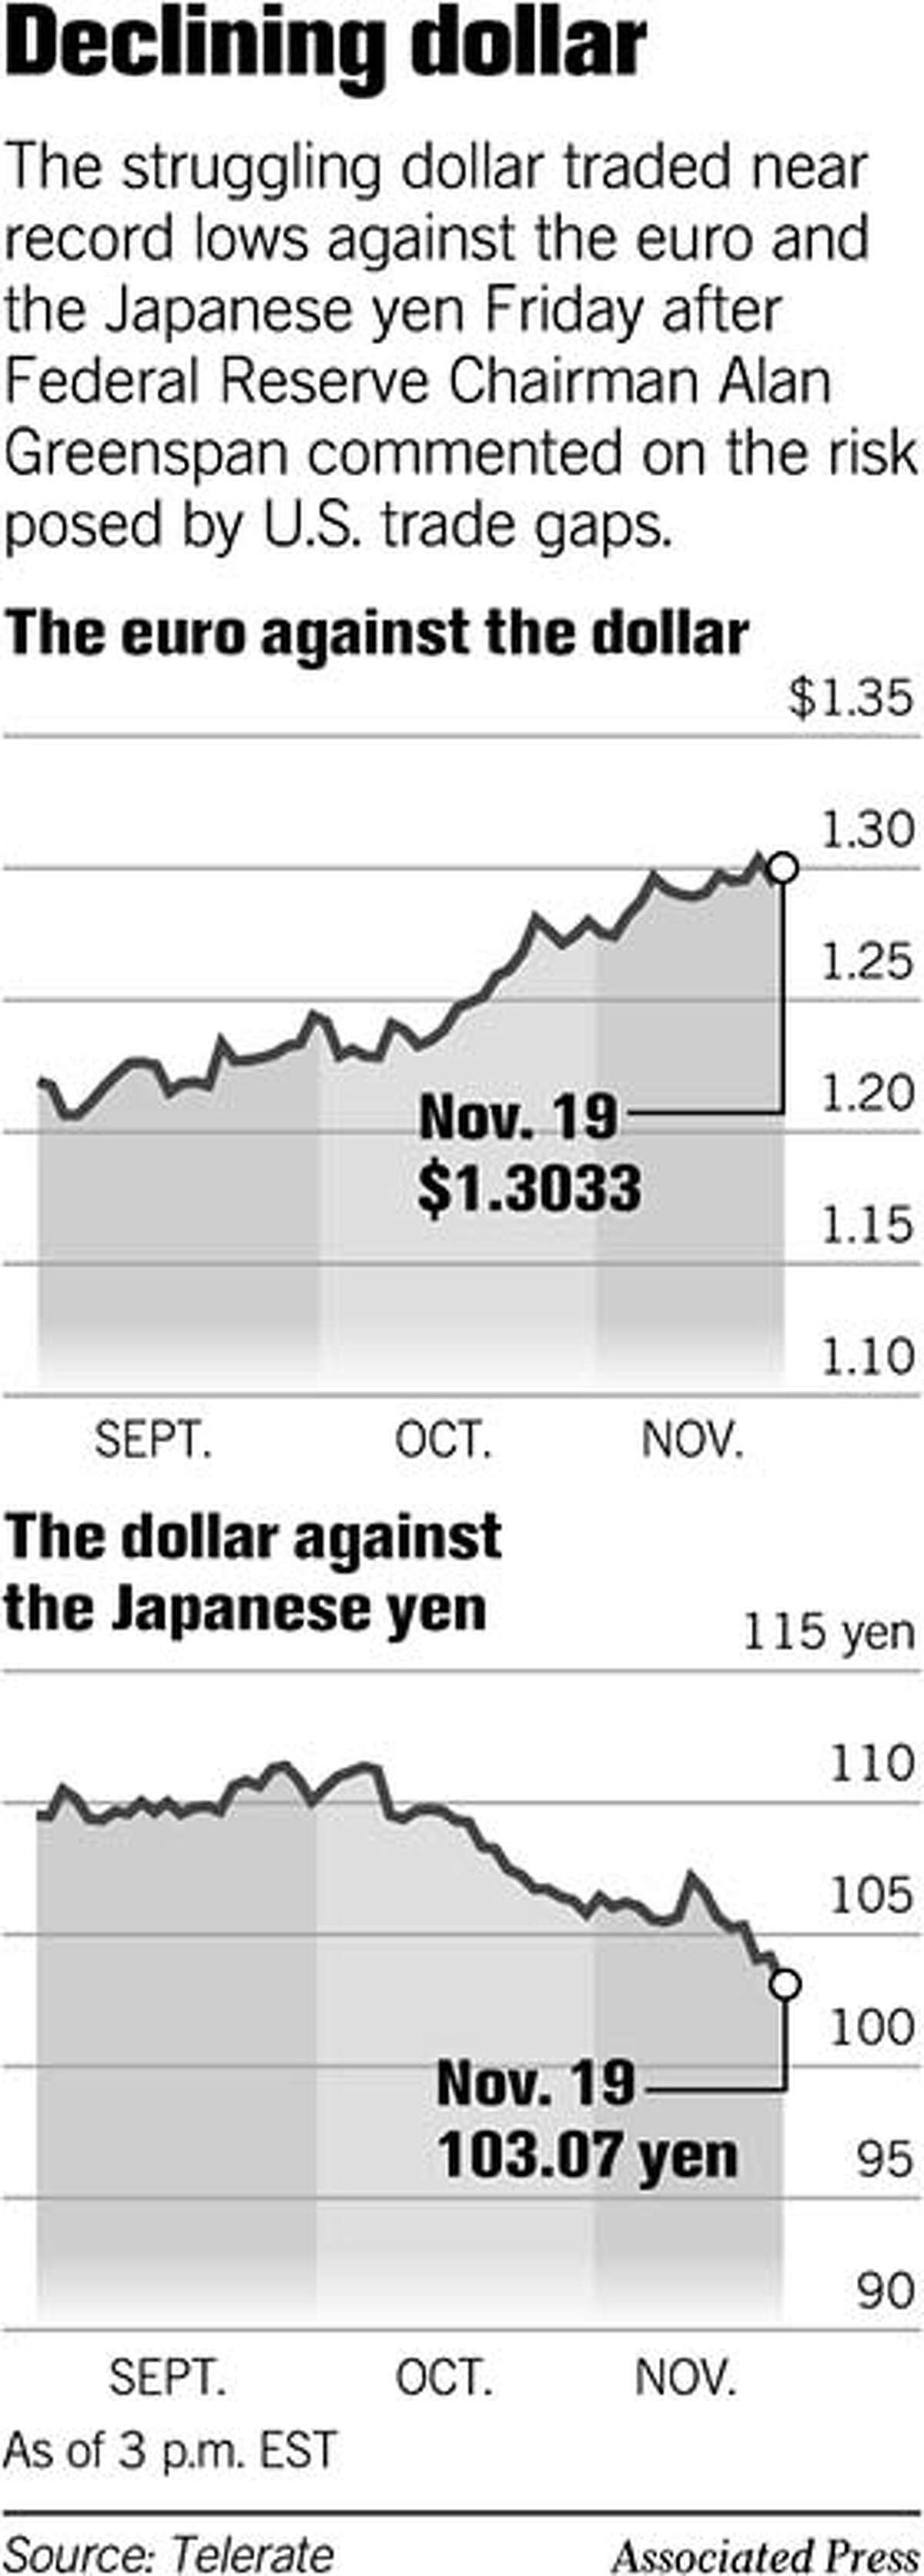 Declining Dollar. Associated Press Graphic